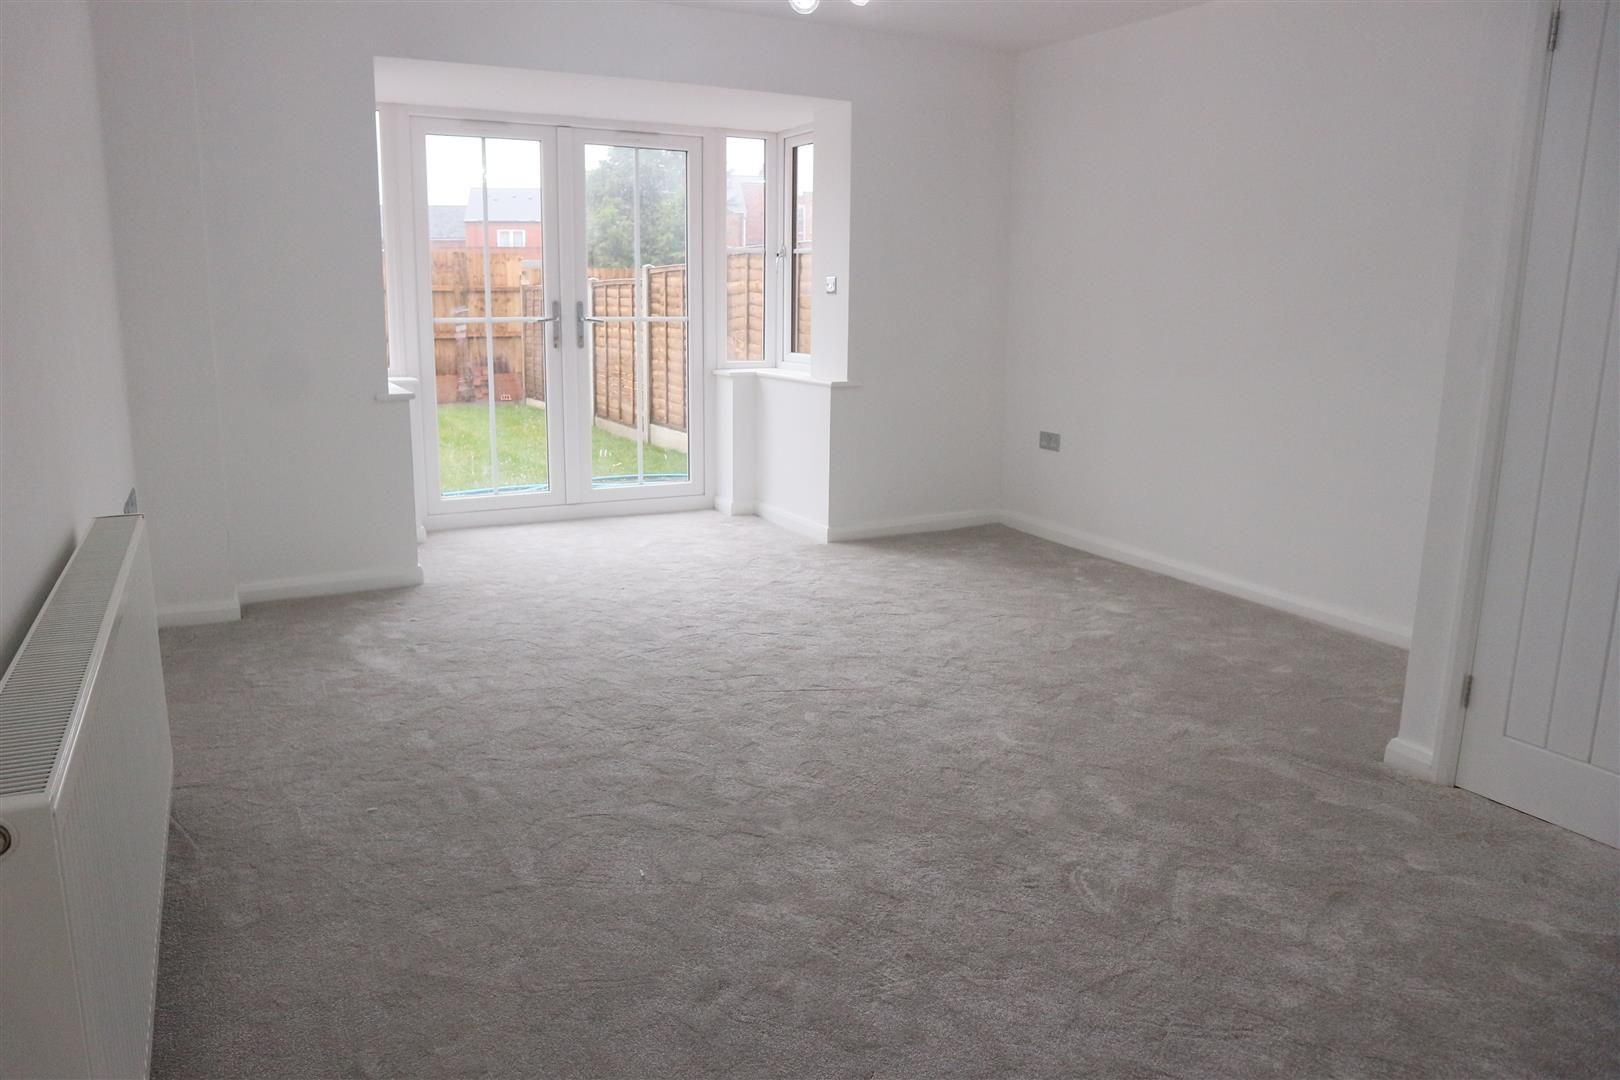 3 bed semi-detached for sale in Netherton 4